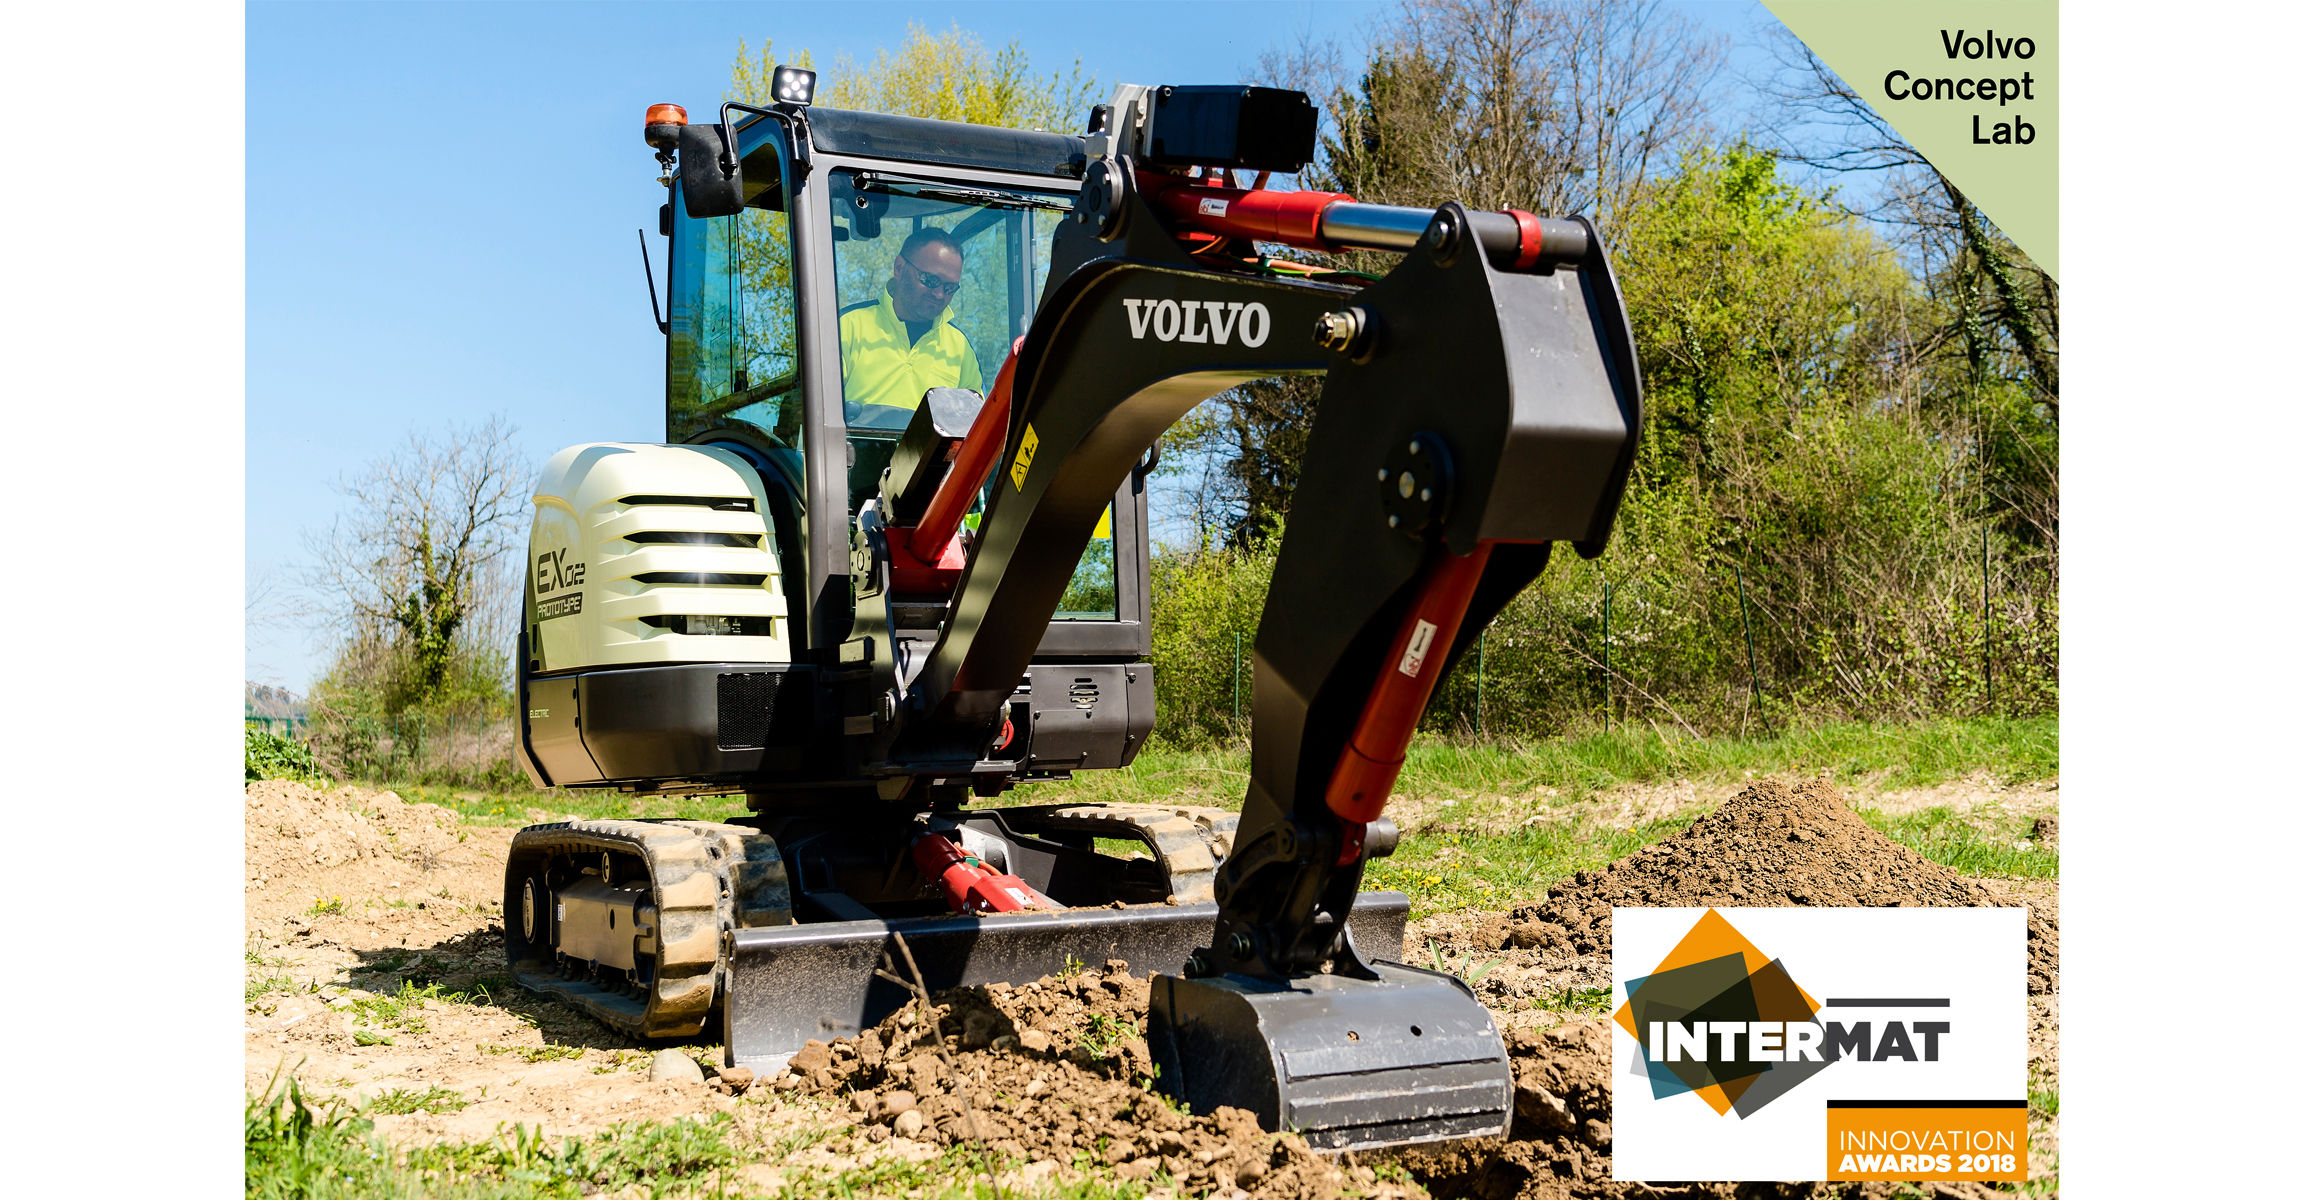 Volvo CE's fully-electric compact excavator prototype wins Intermat Innovation Award